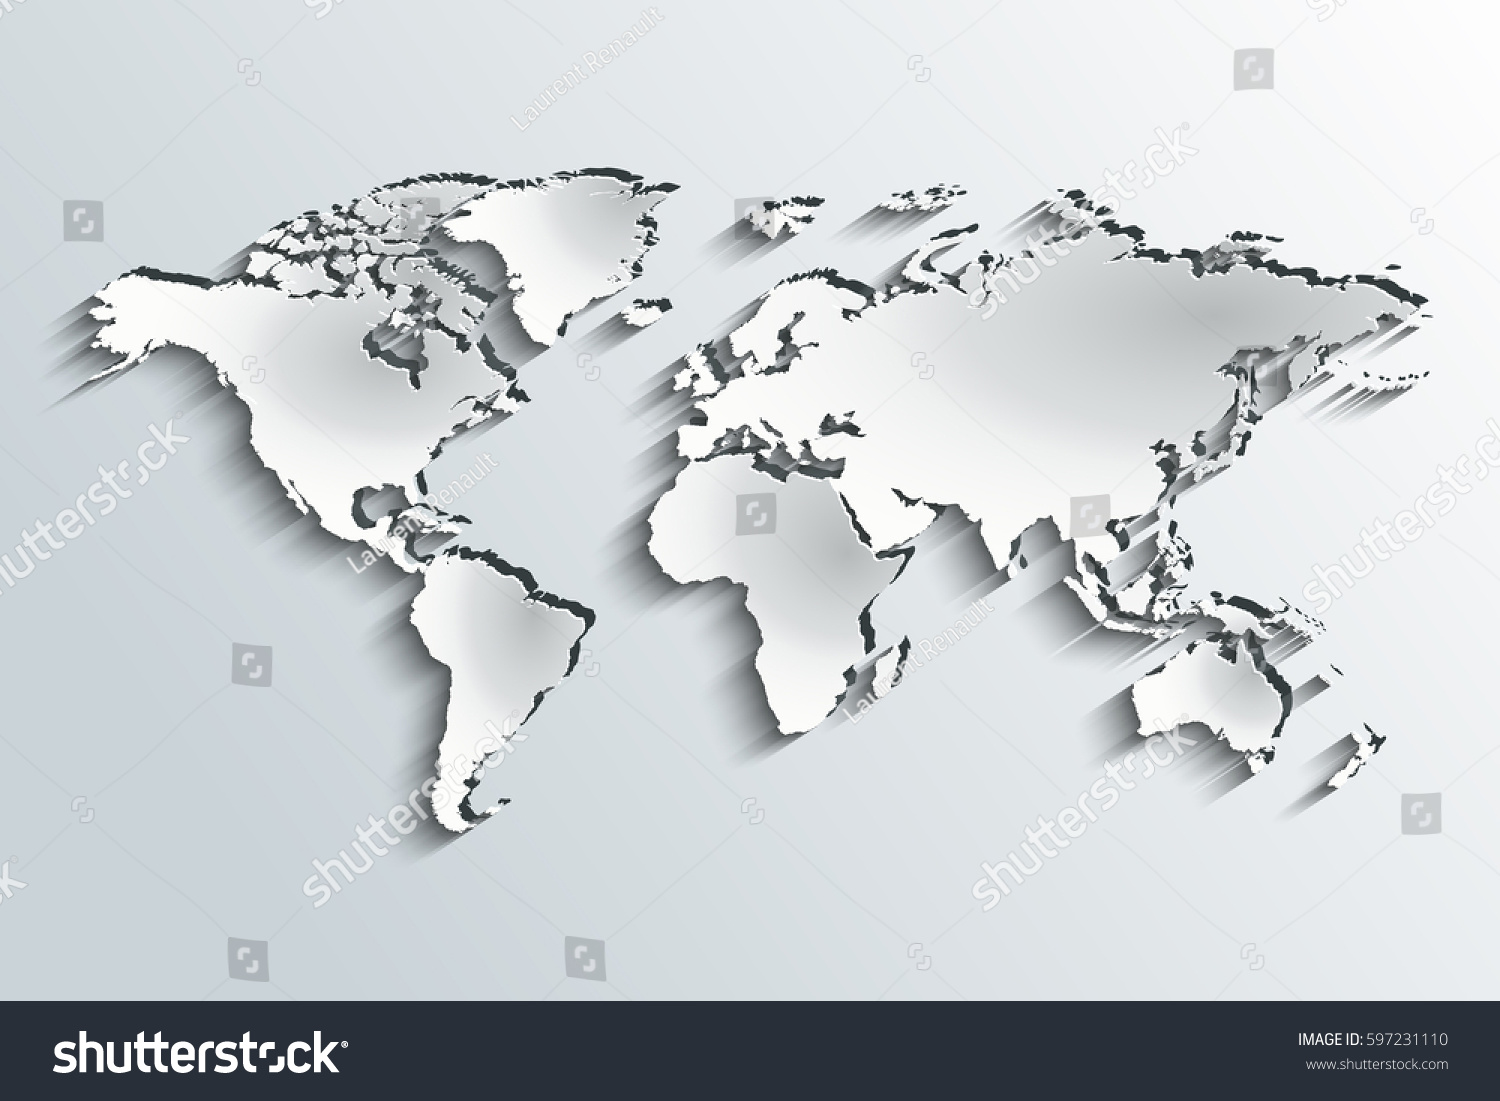 World map embossed peeling paper over stock vector hd royalty free world map embossed in peeling paper over a grey gradient gumiabroncs Gallery